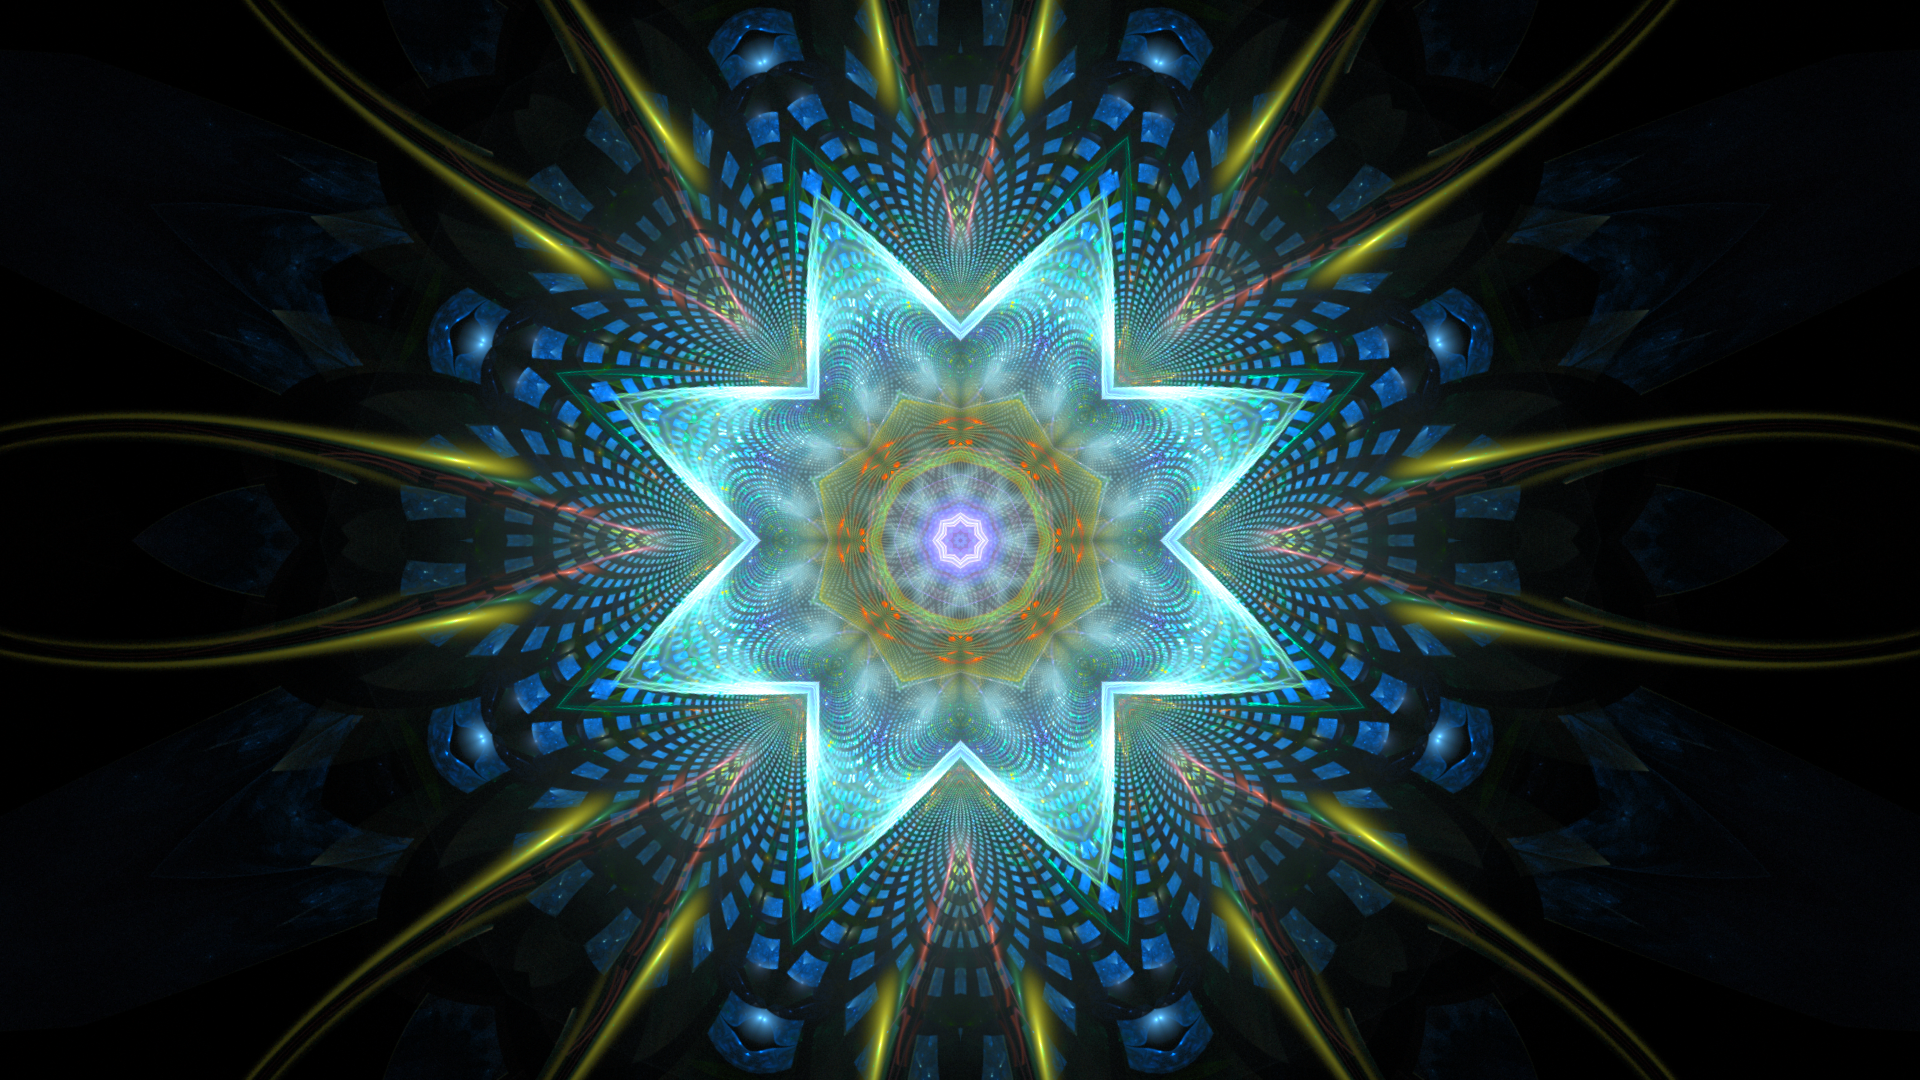 Kaleidoscope Wallpapers in Best 1920x1080 Resolutions | Lorette Curran BsnSCB Gallery